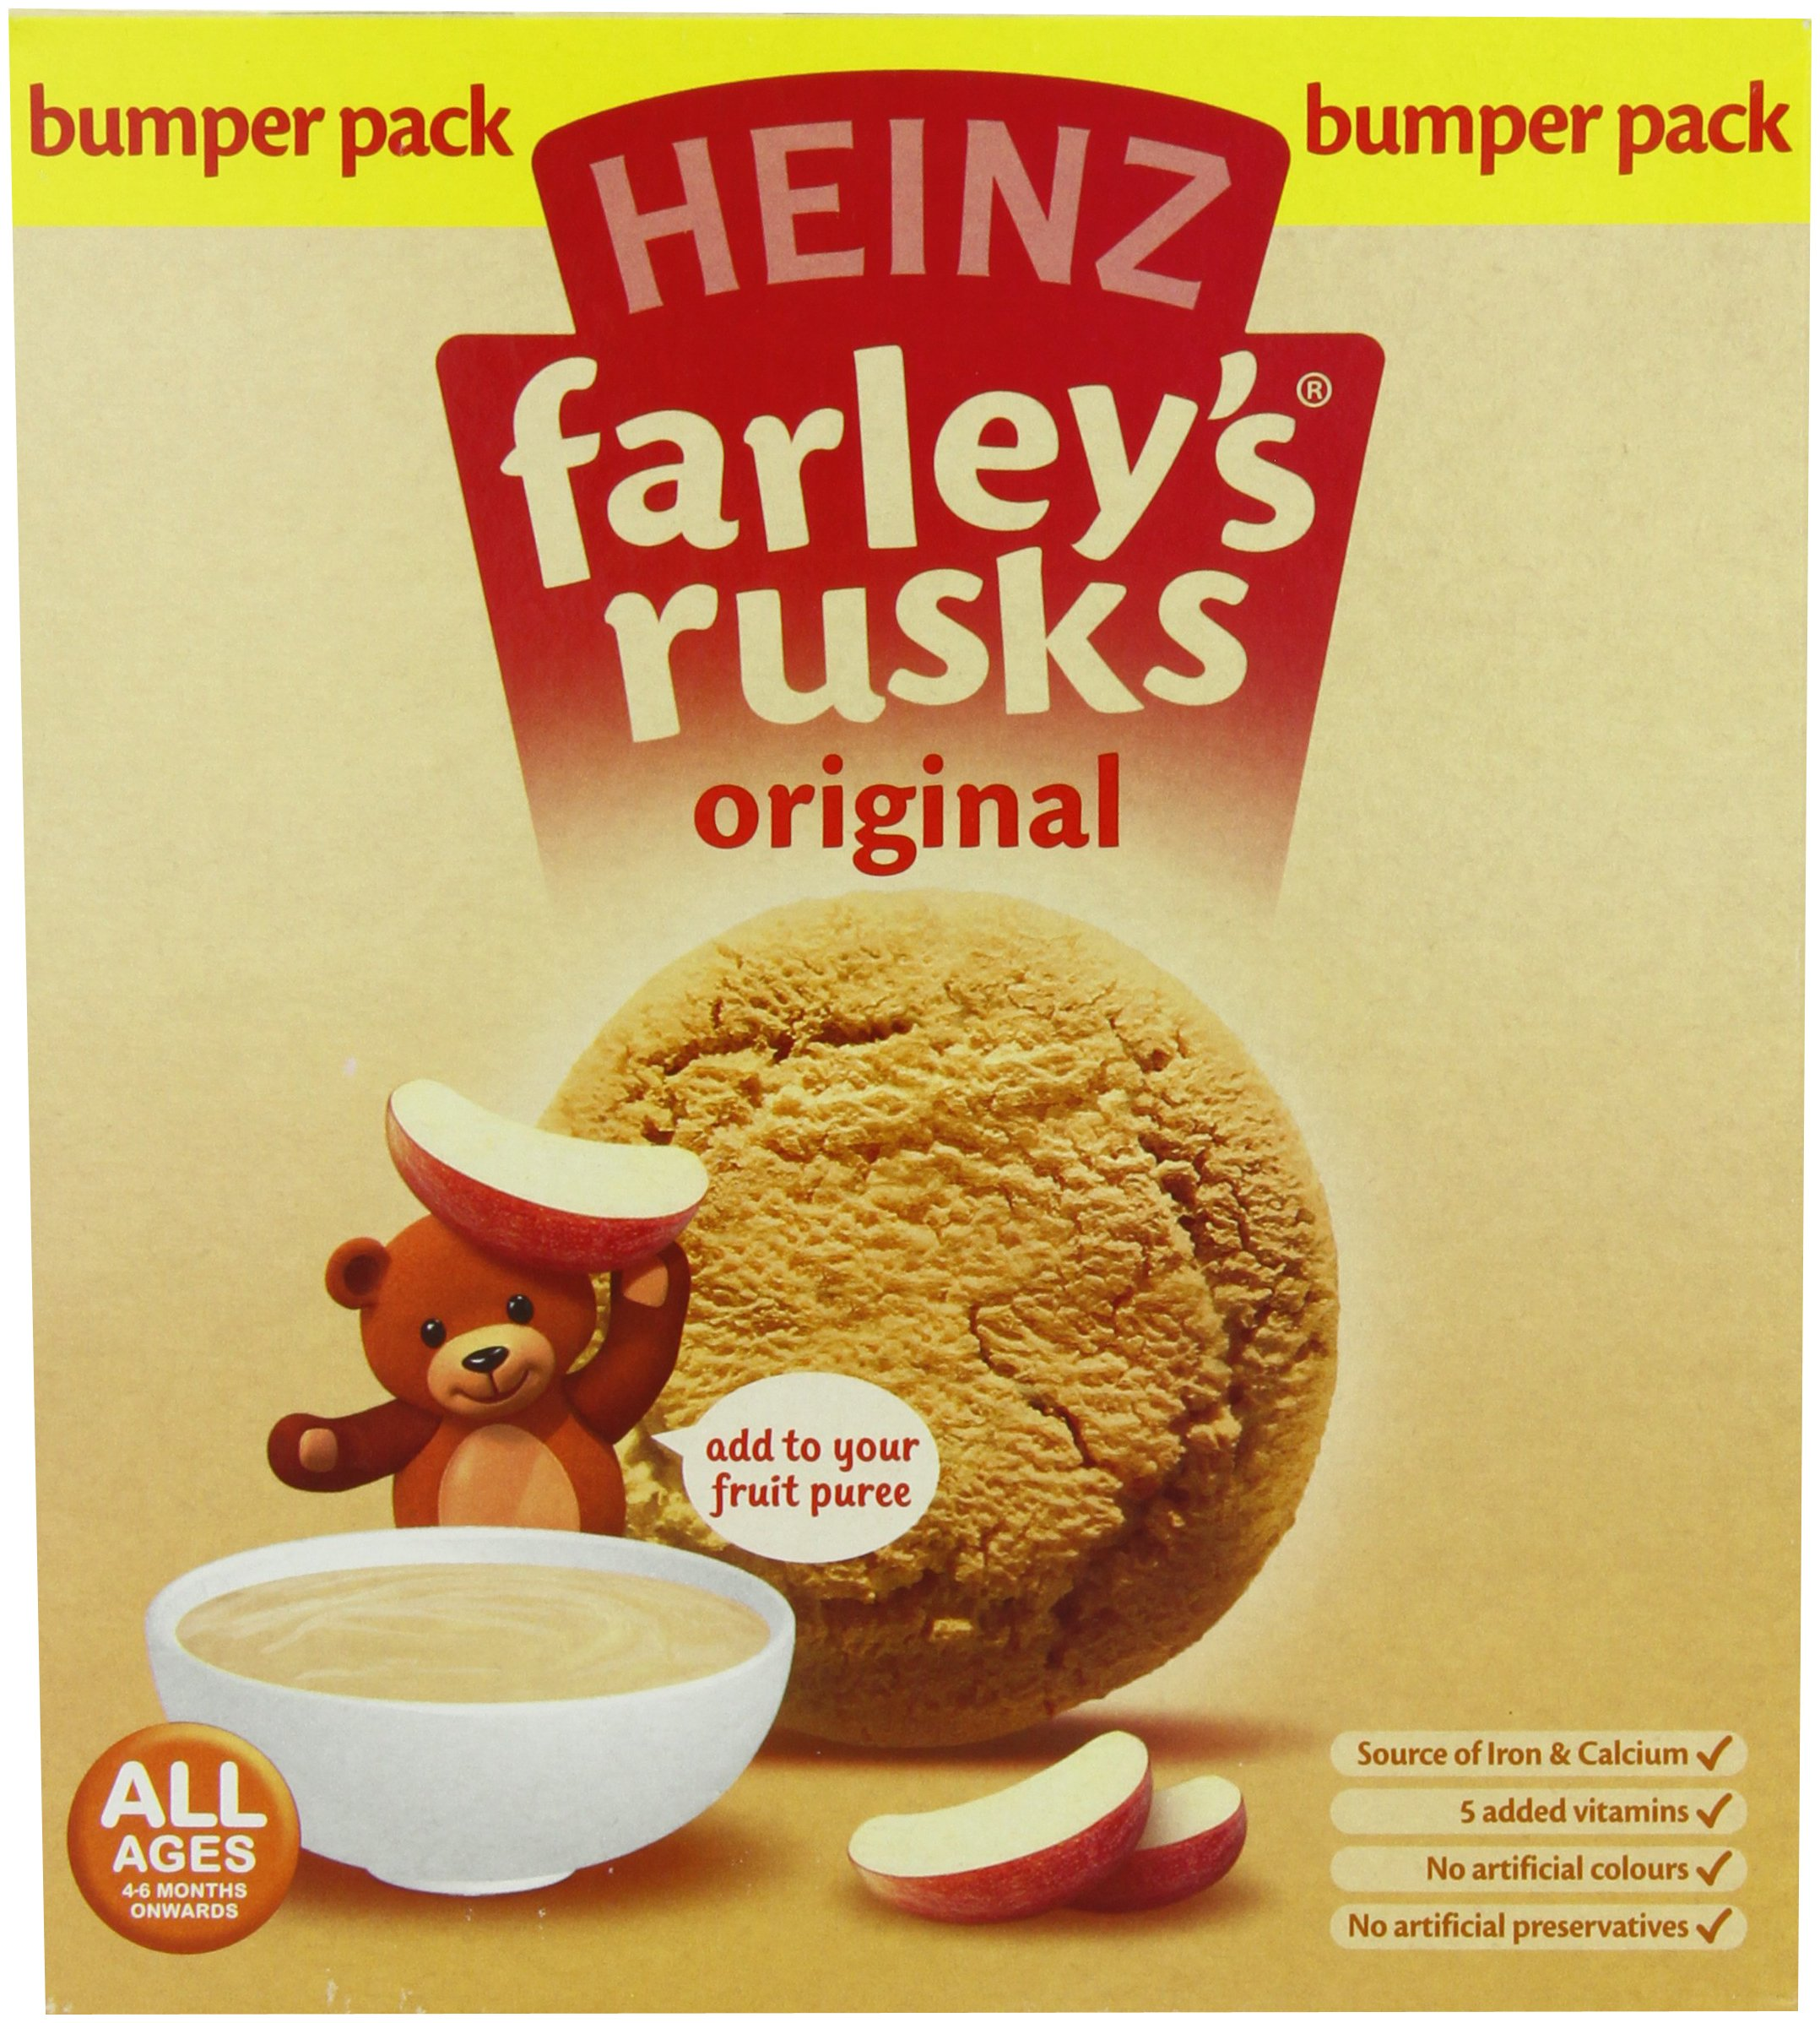 Heinz Farley's Rusks, Original Flavor, 300g Boxes (Pack of 6) by Heinz